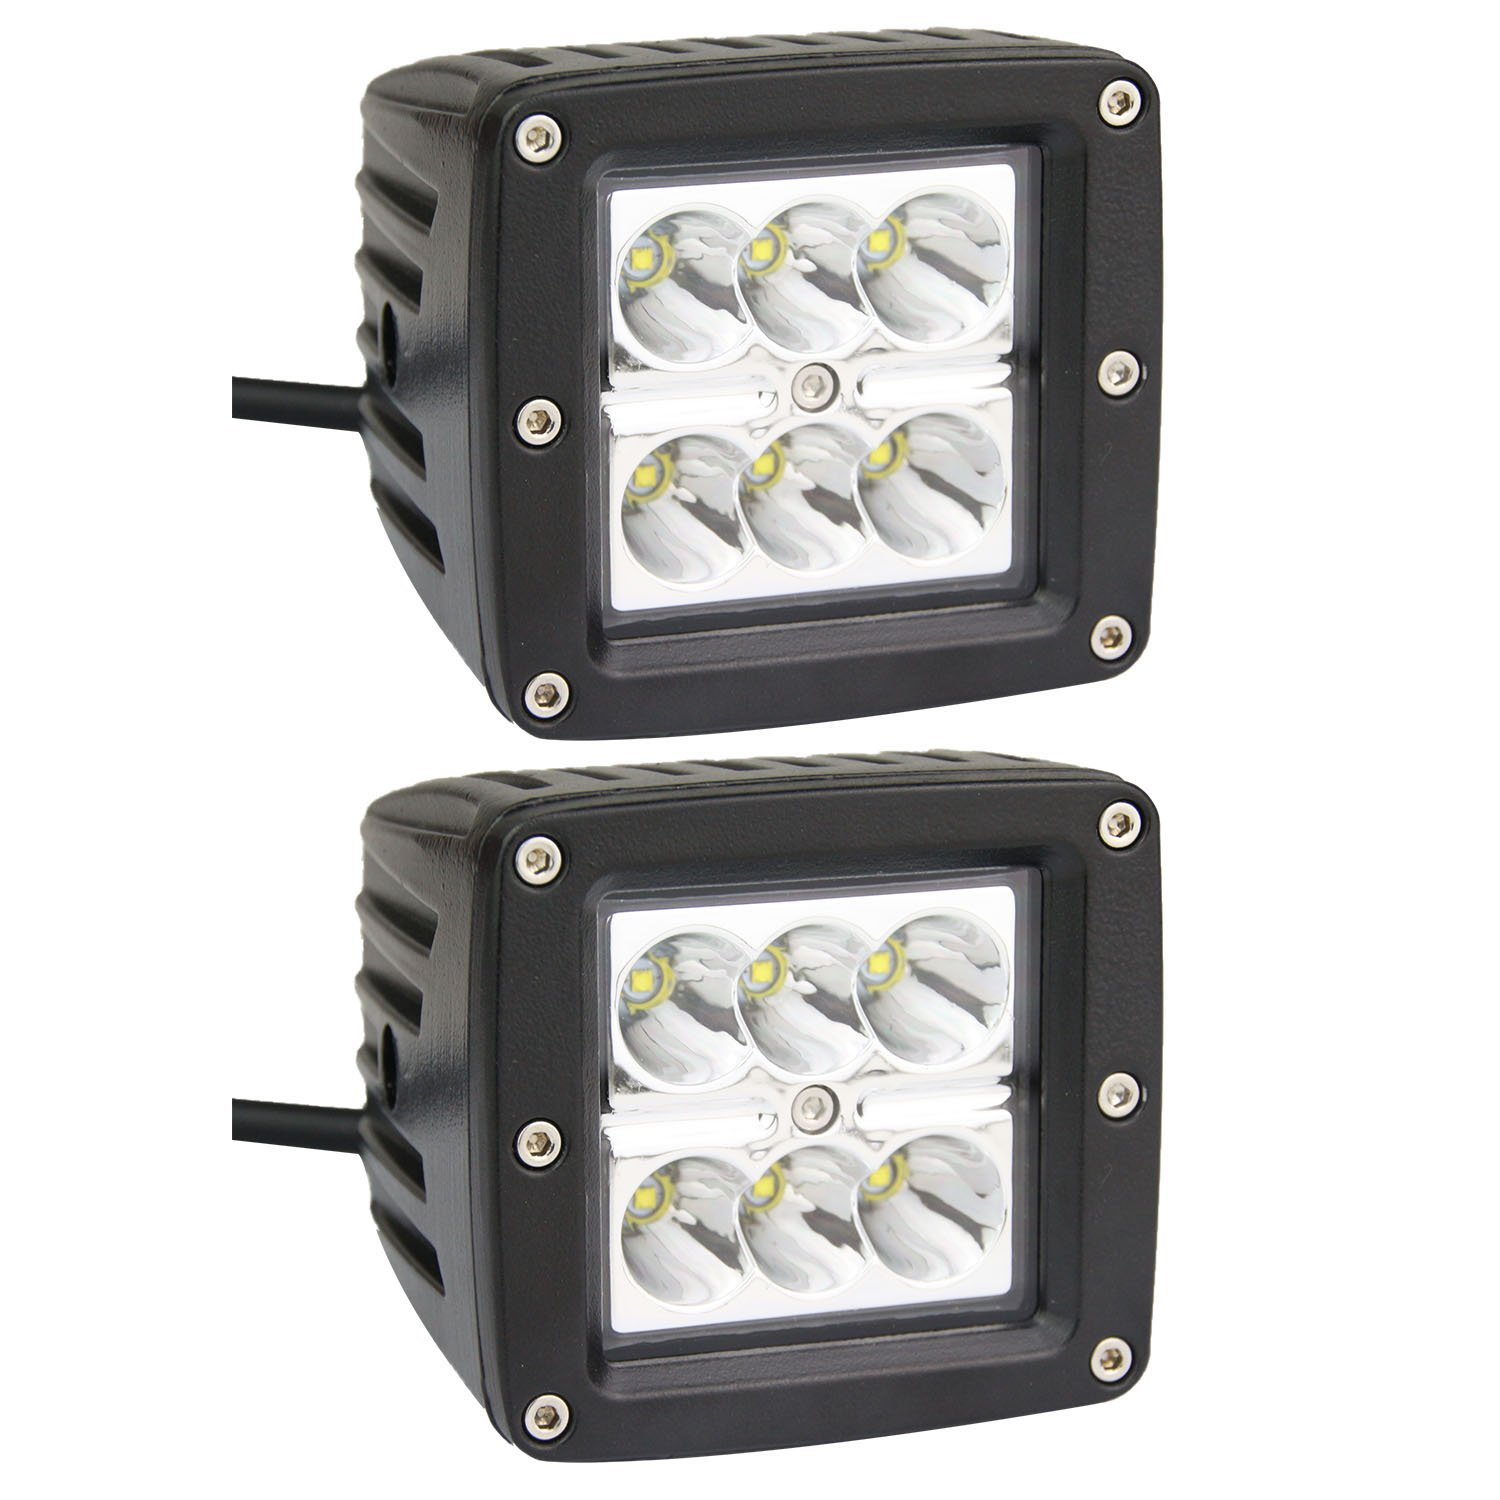 Spot Lights Driving Fog Spot Lights Automotive